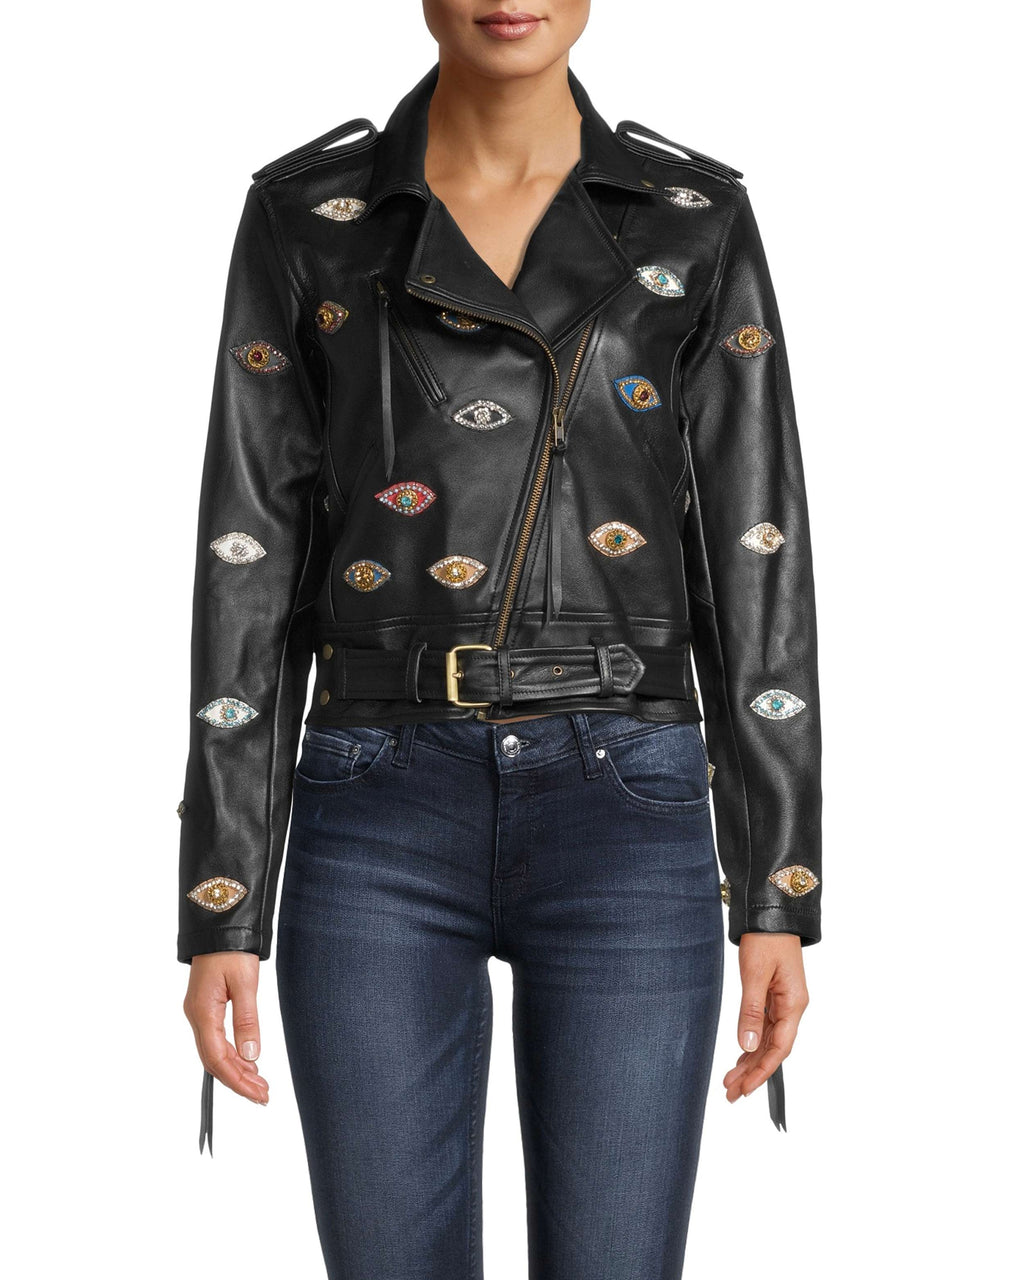 EK10021 - Evil Eye Embellished Leather Jacket - outerwear - leather - Can't stop staring. Our fine-crafted leather jacket is modernized with vivid Evil Eye patches and a belted hem. The sleeve zippers have decorative pulls. Exposed gold zipper for closure.